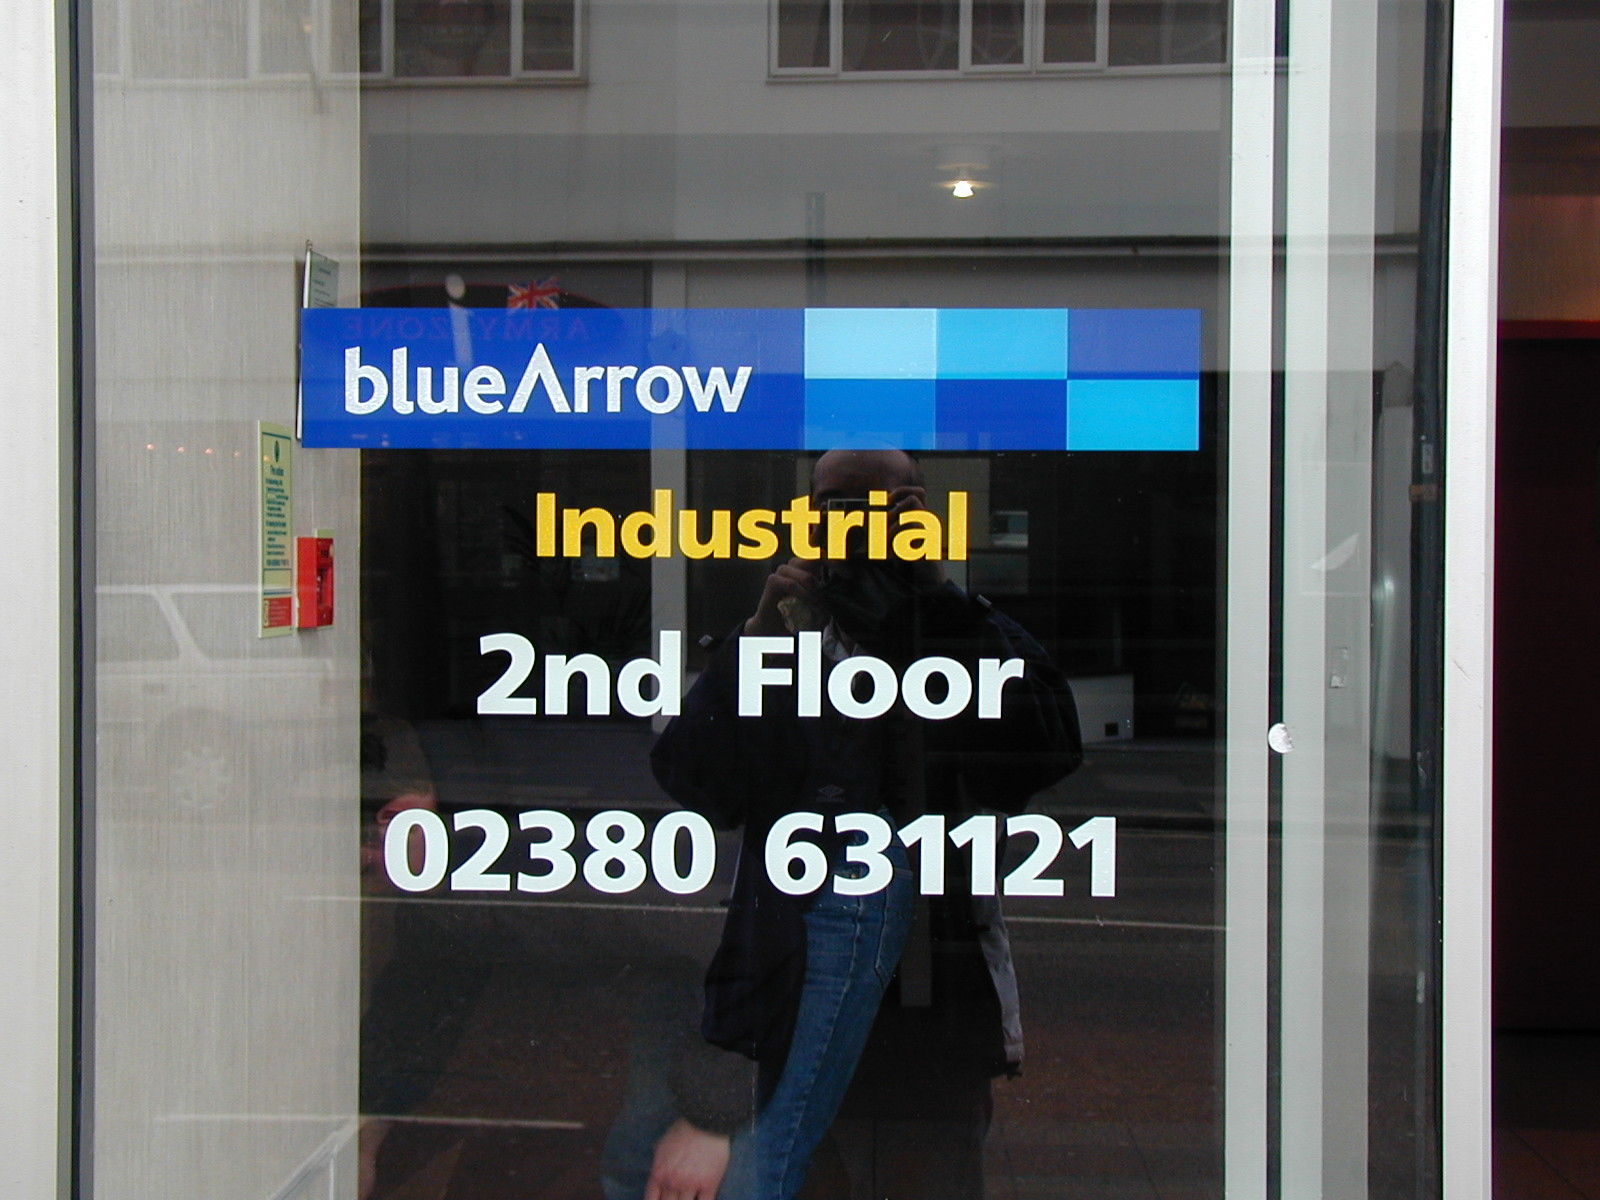 Blue arrow window graphics